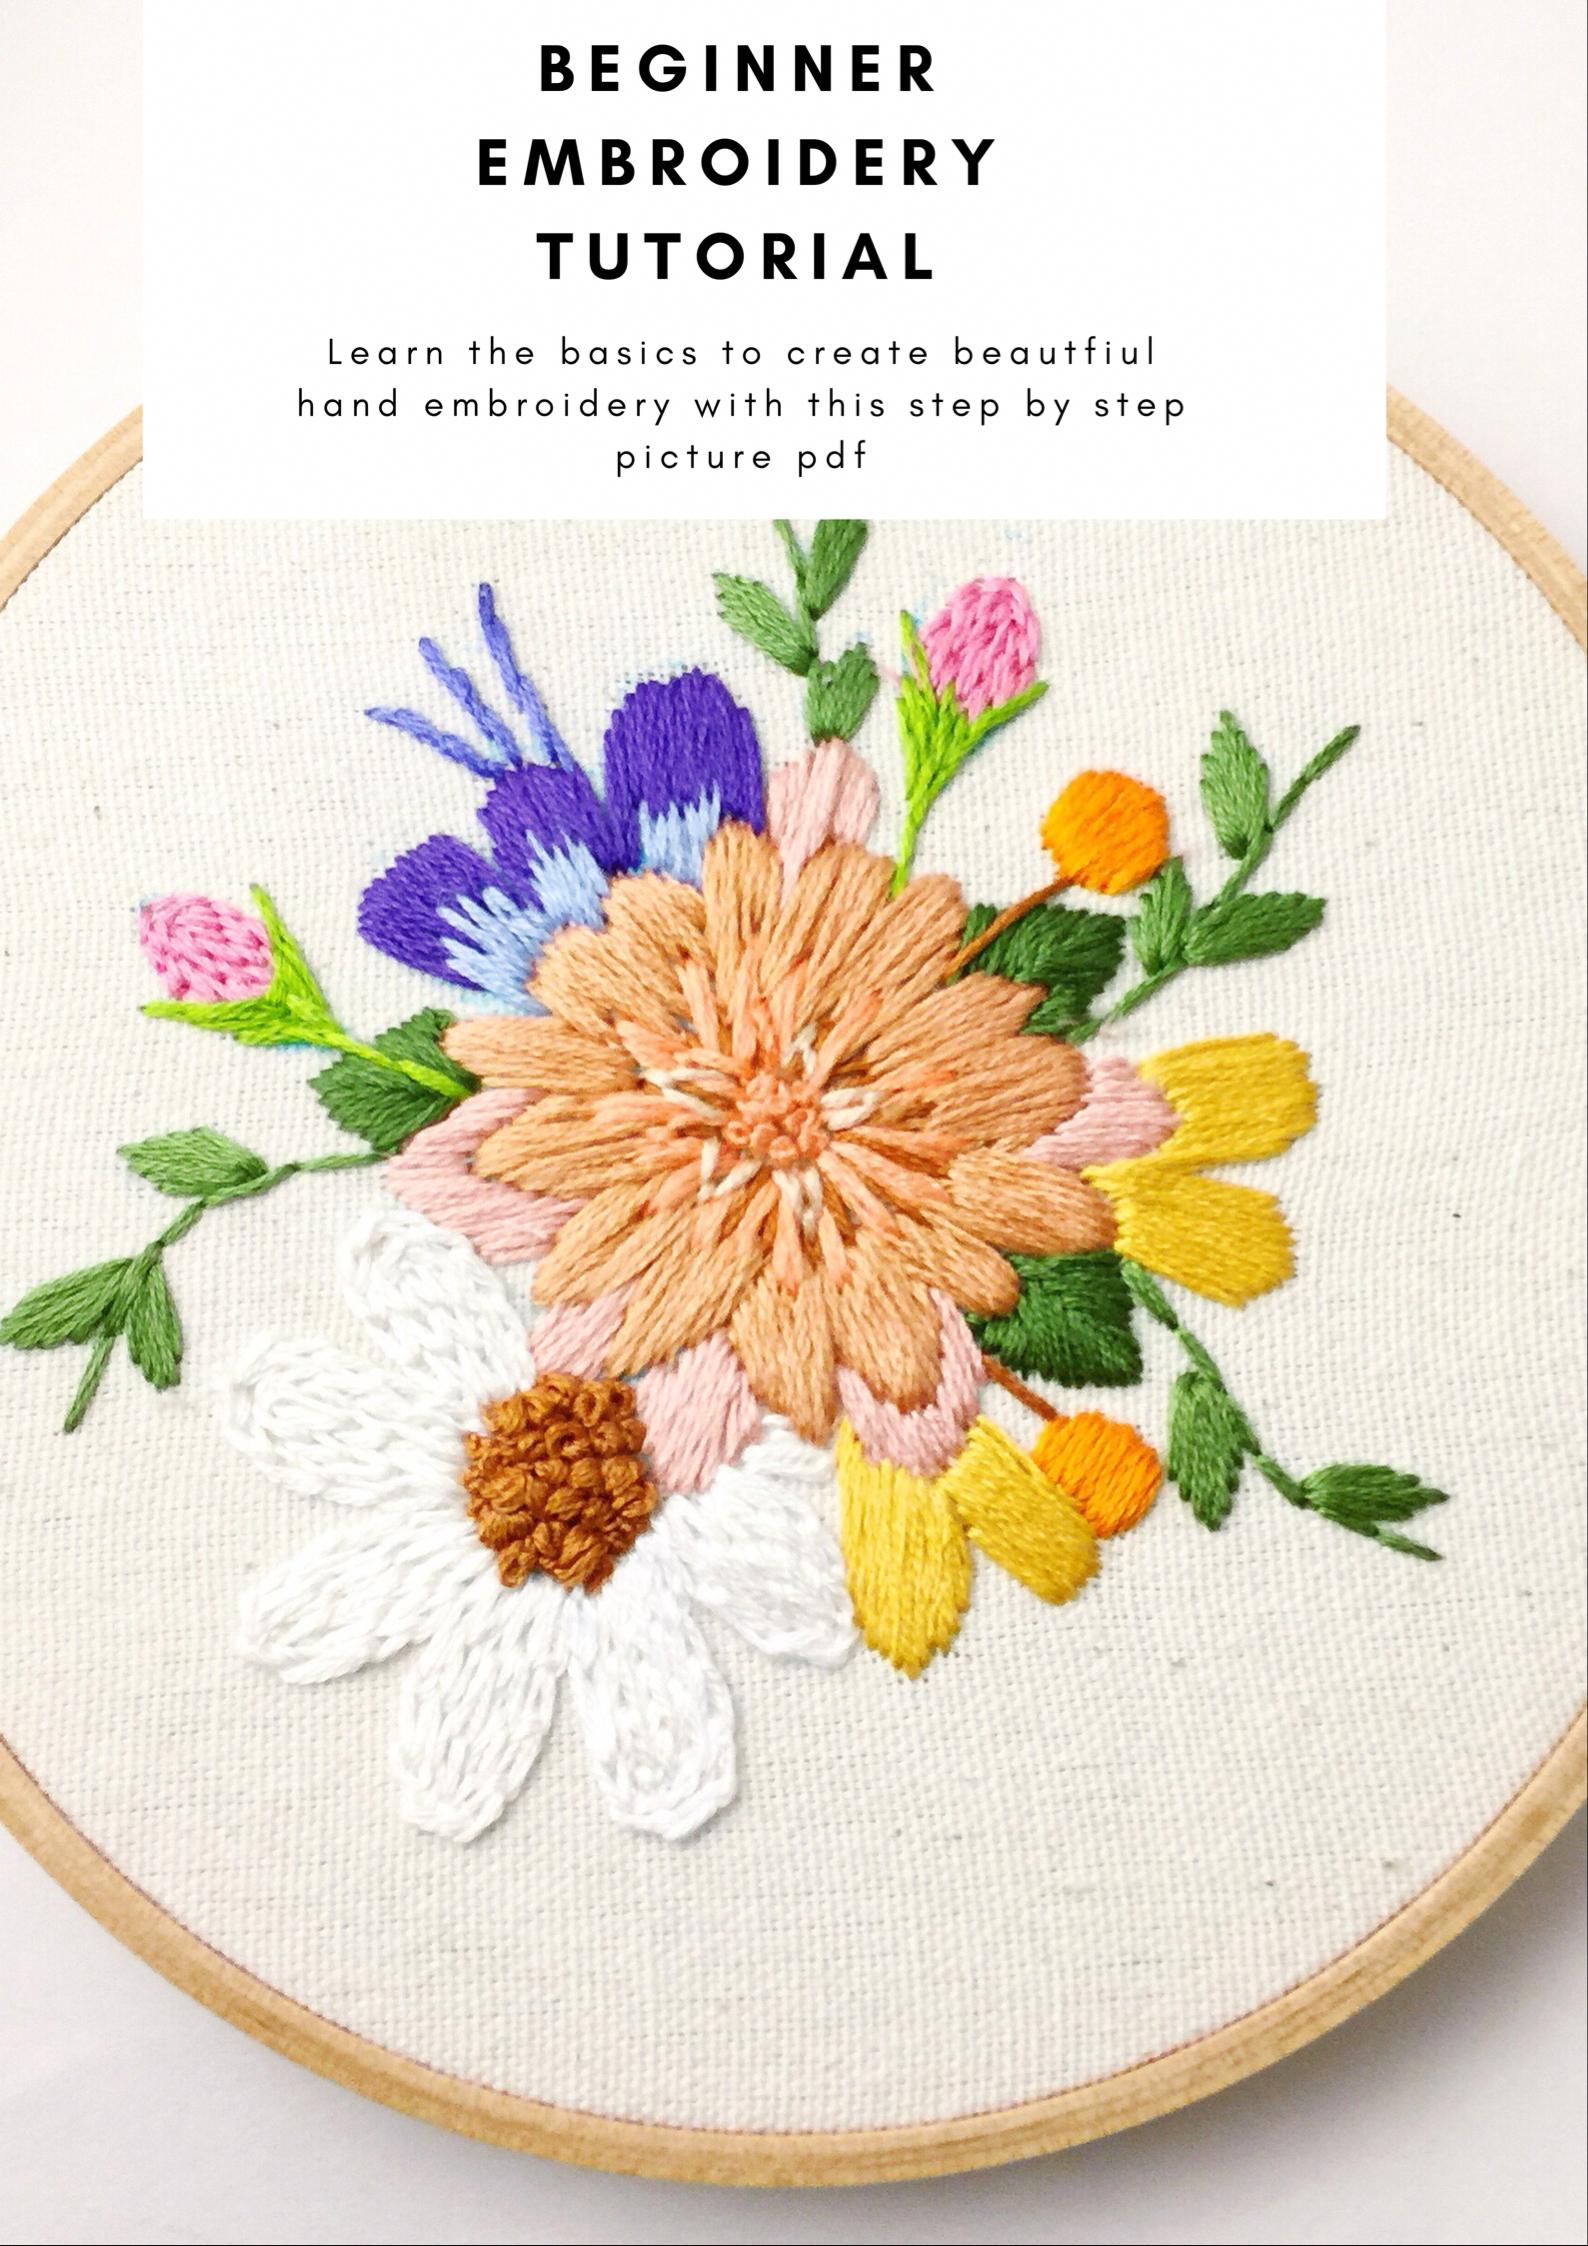 How To Embroider Basic Hand Embroidery Stitches Step By Step